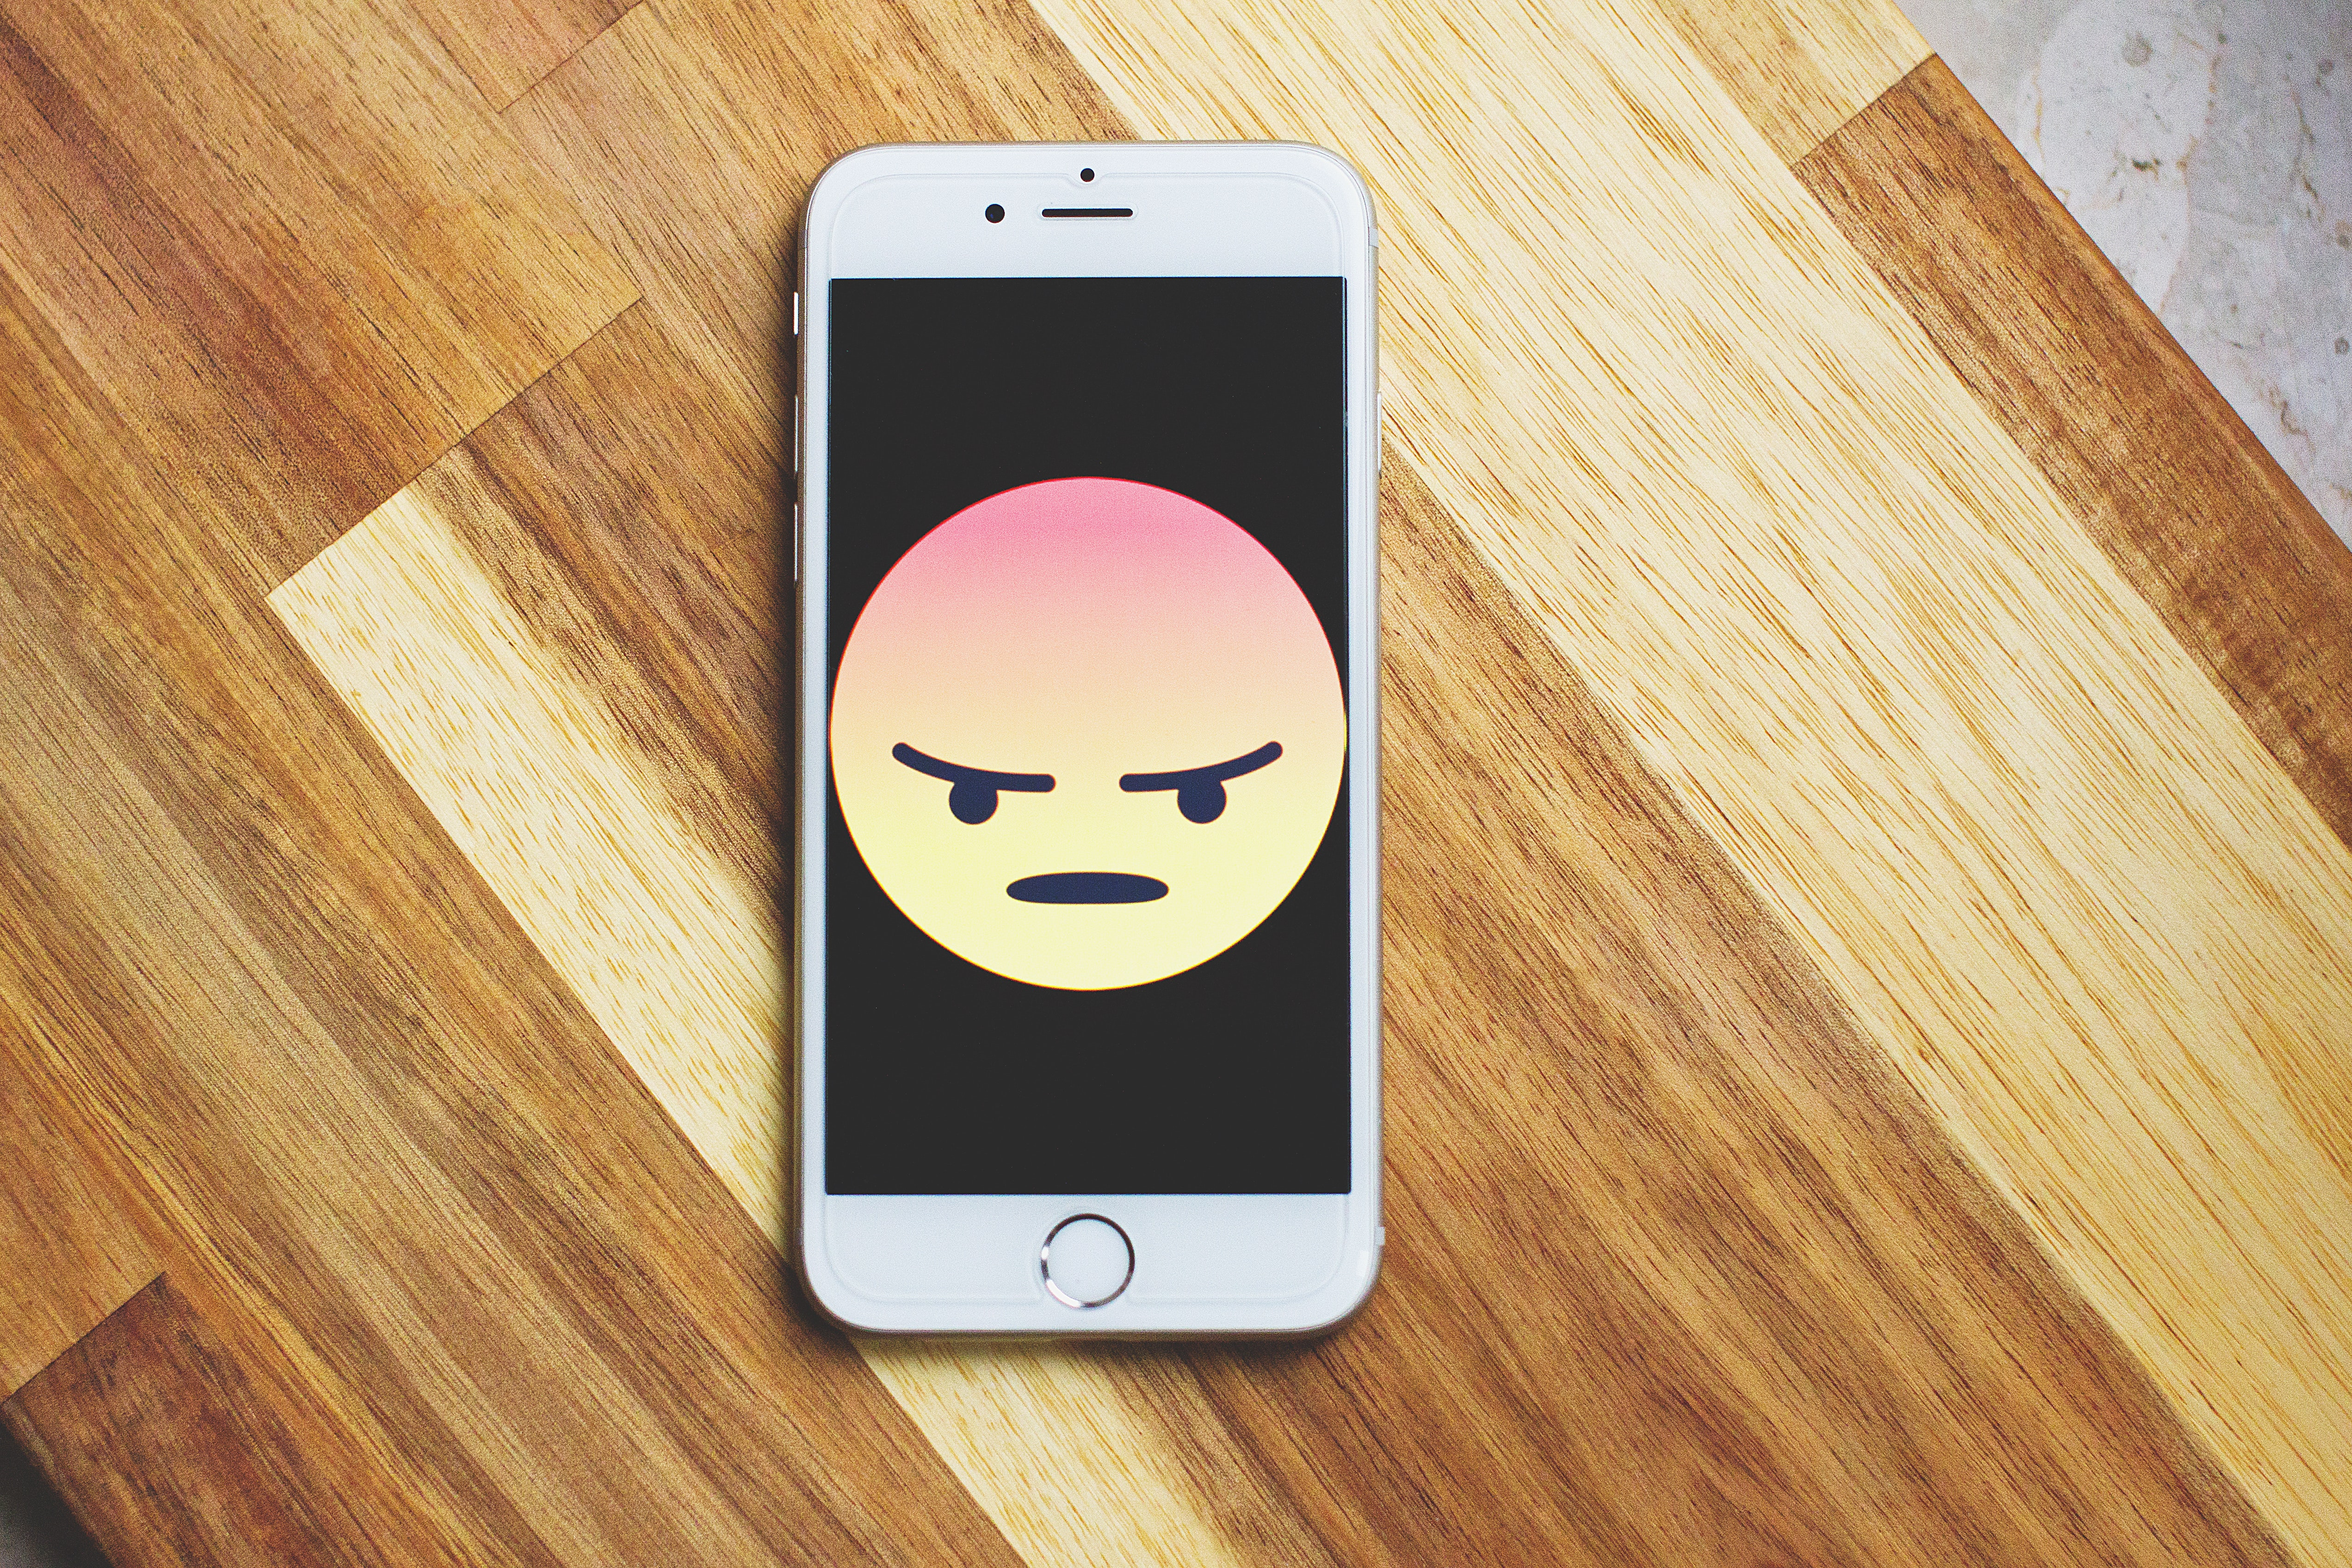 Grumpy people are said to be superior negotiators and decision-makers. (Credit: Pexels)